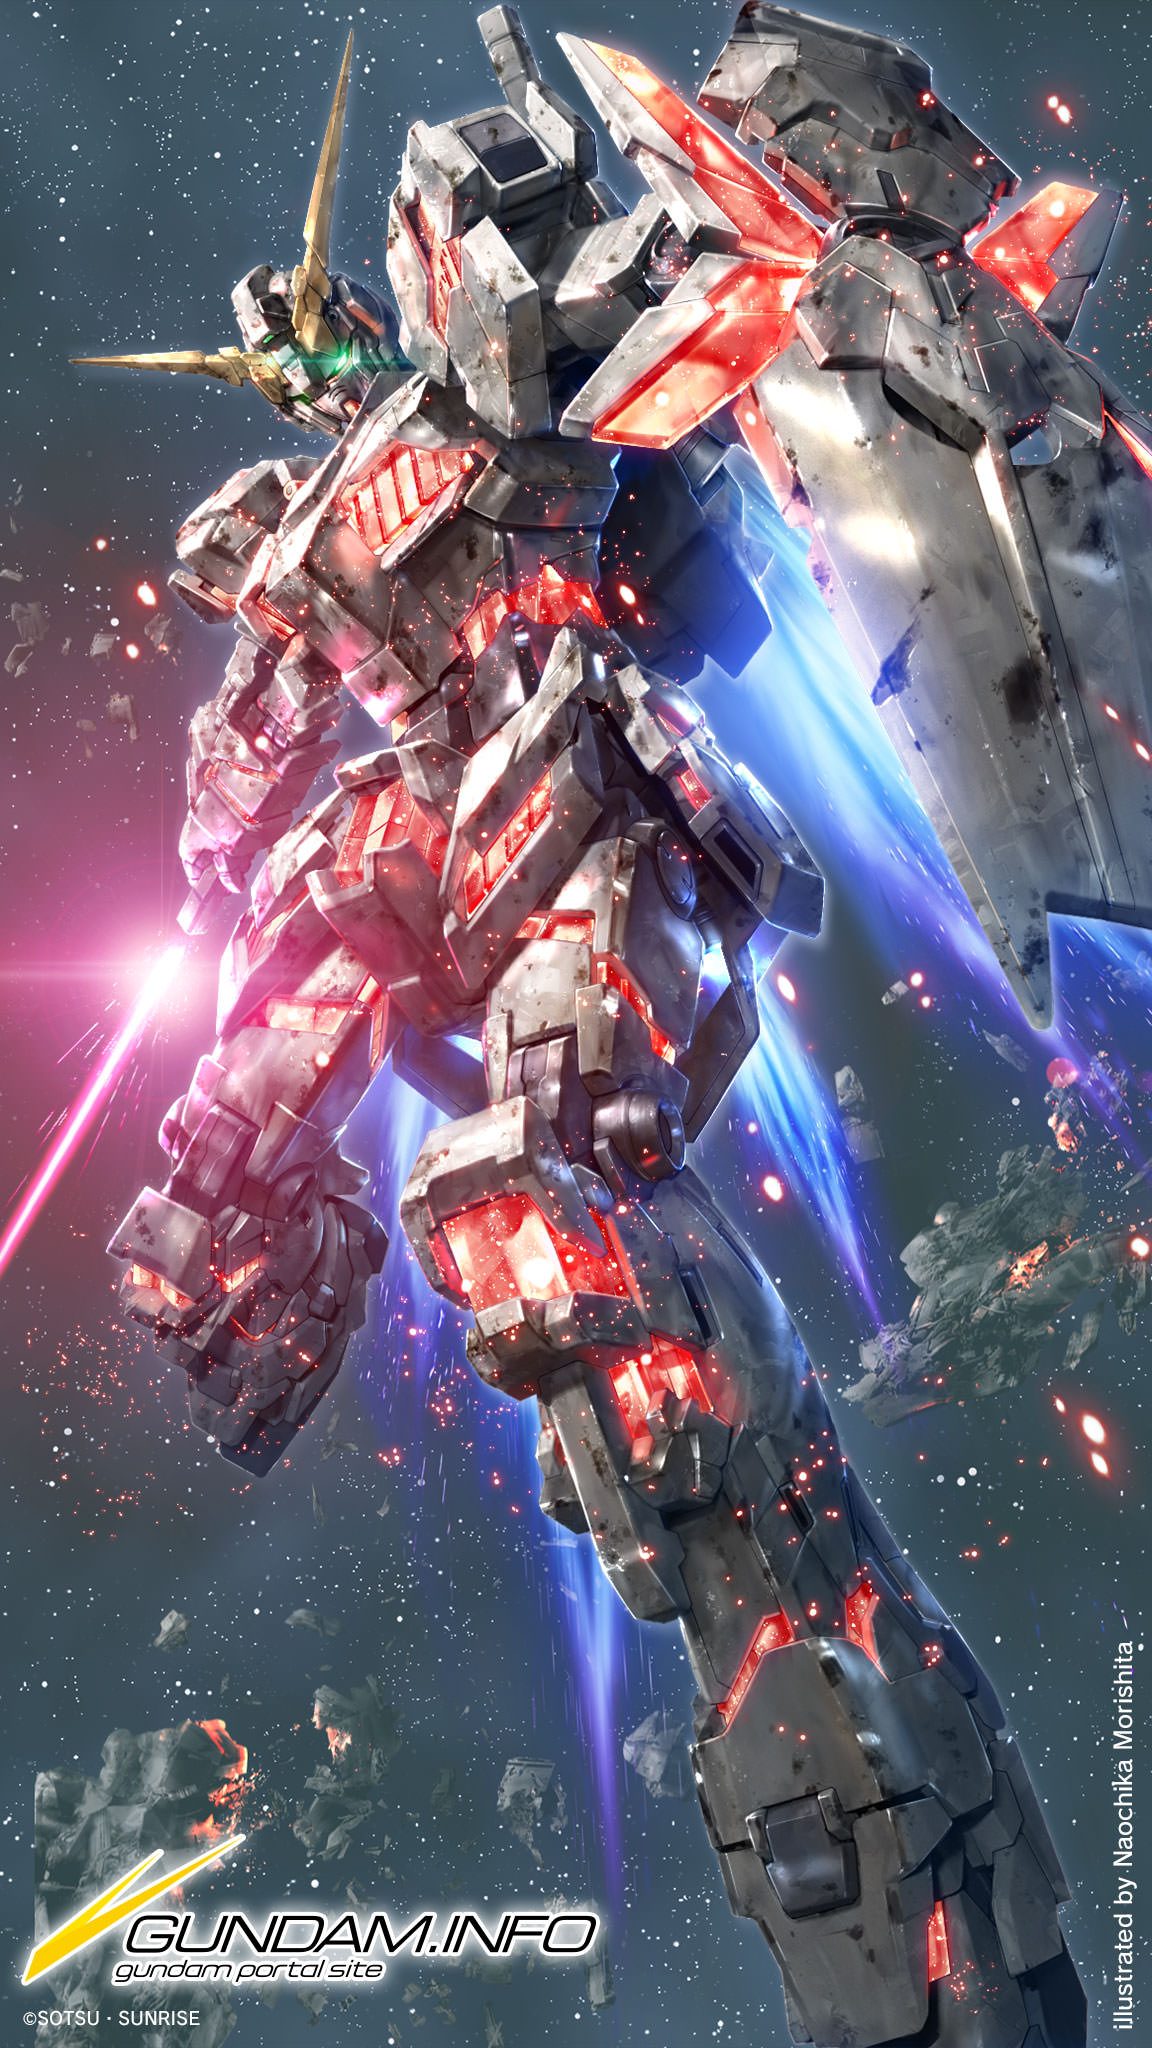 Gundam Unicorn Wallpaper Iphone 1152x48 Wallpaper Teahub Io